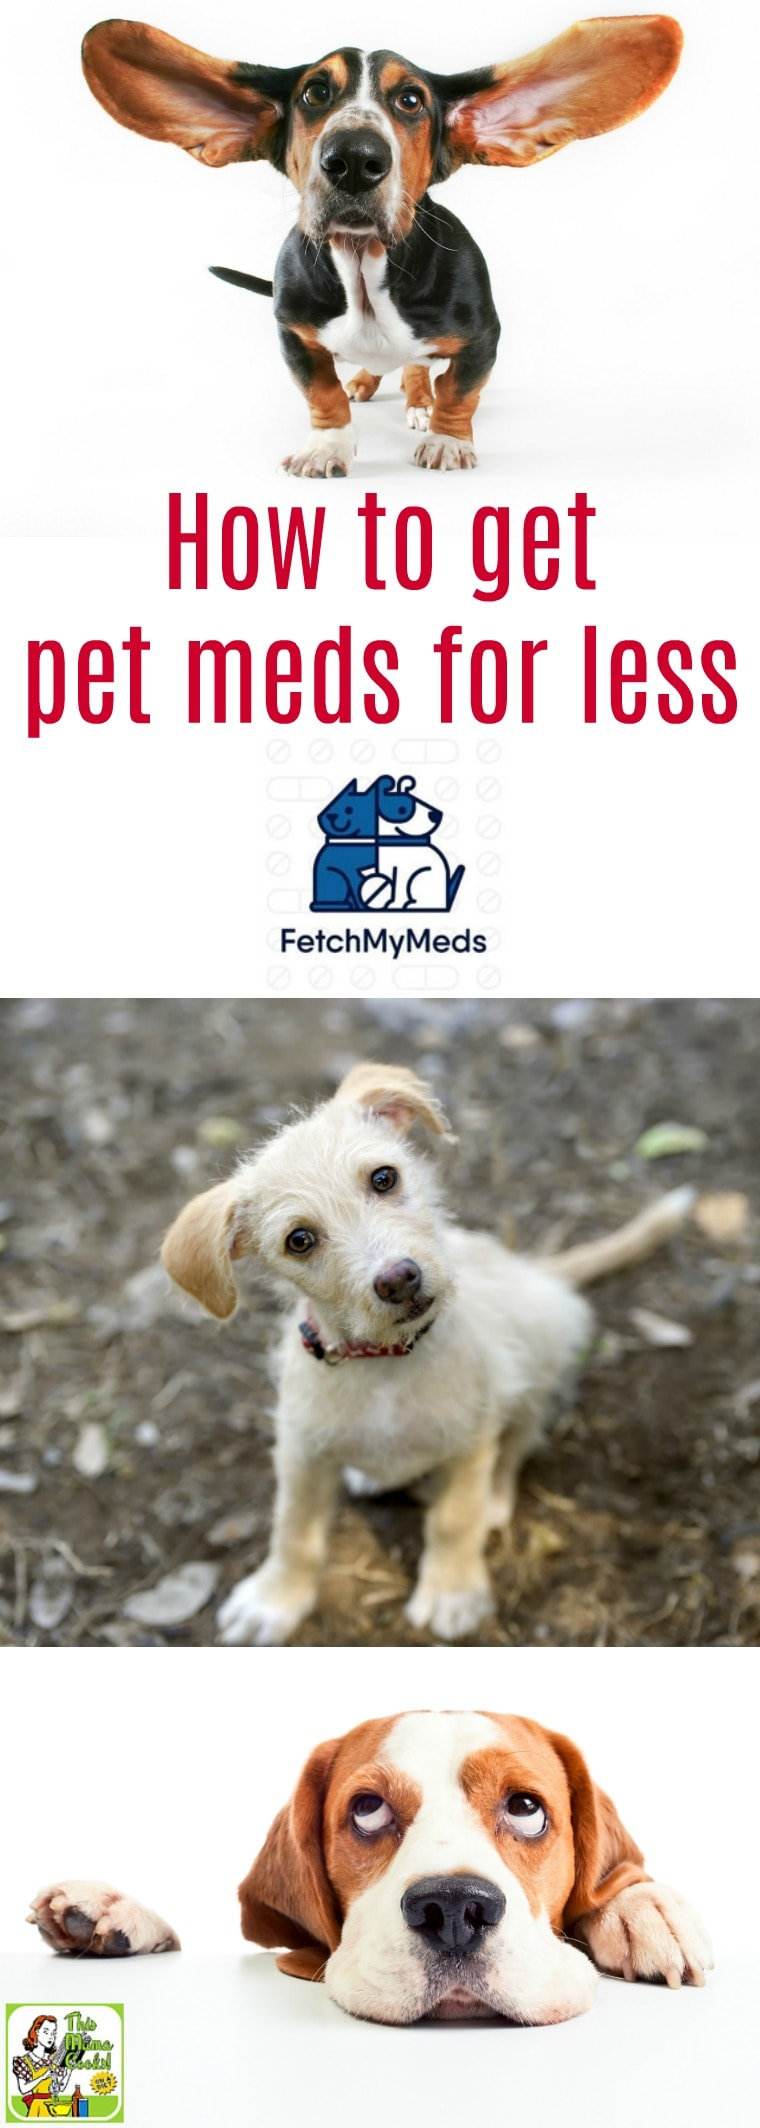 Want to learn how to get pet meds for less? Check out Fetch My Meds, a great program for discount pet meds. It's a pet prescription discount card can help you save on pet meds. Free, easy to use and takes only a couple of minutes to sign up. #pets #petmeds #petmedsforless #discountpetmeds #petRx #dogs #cats #lovedogs #lovecats